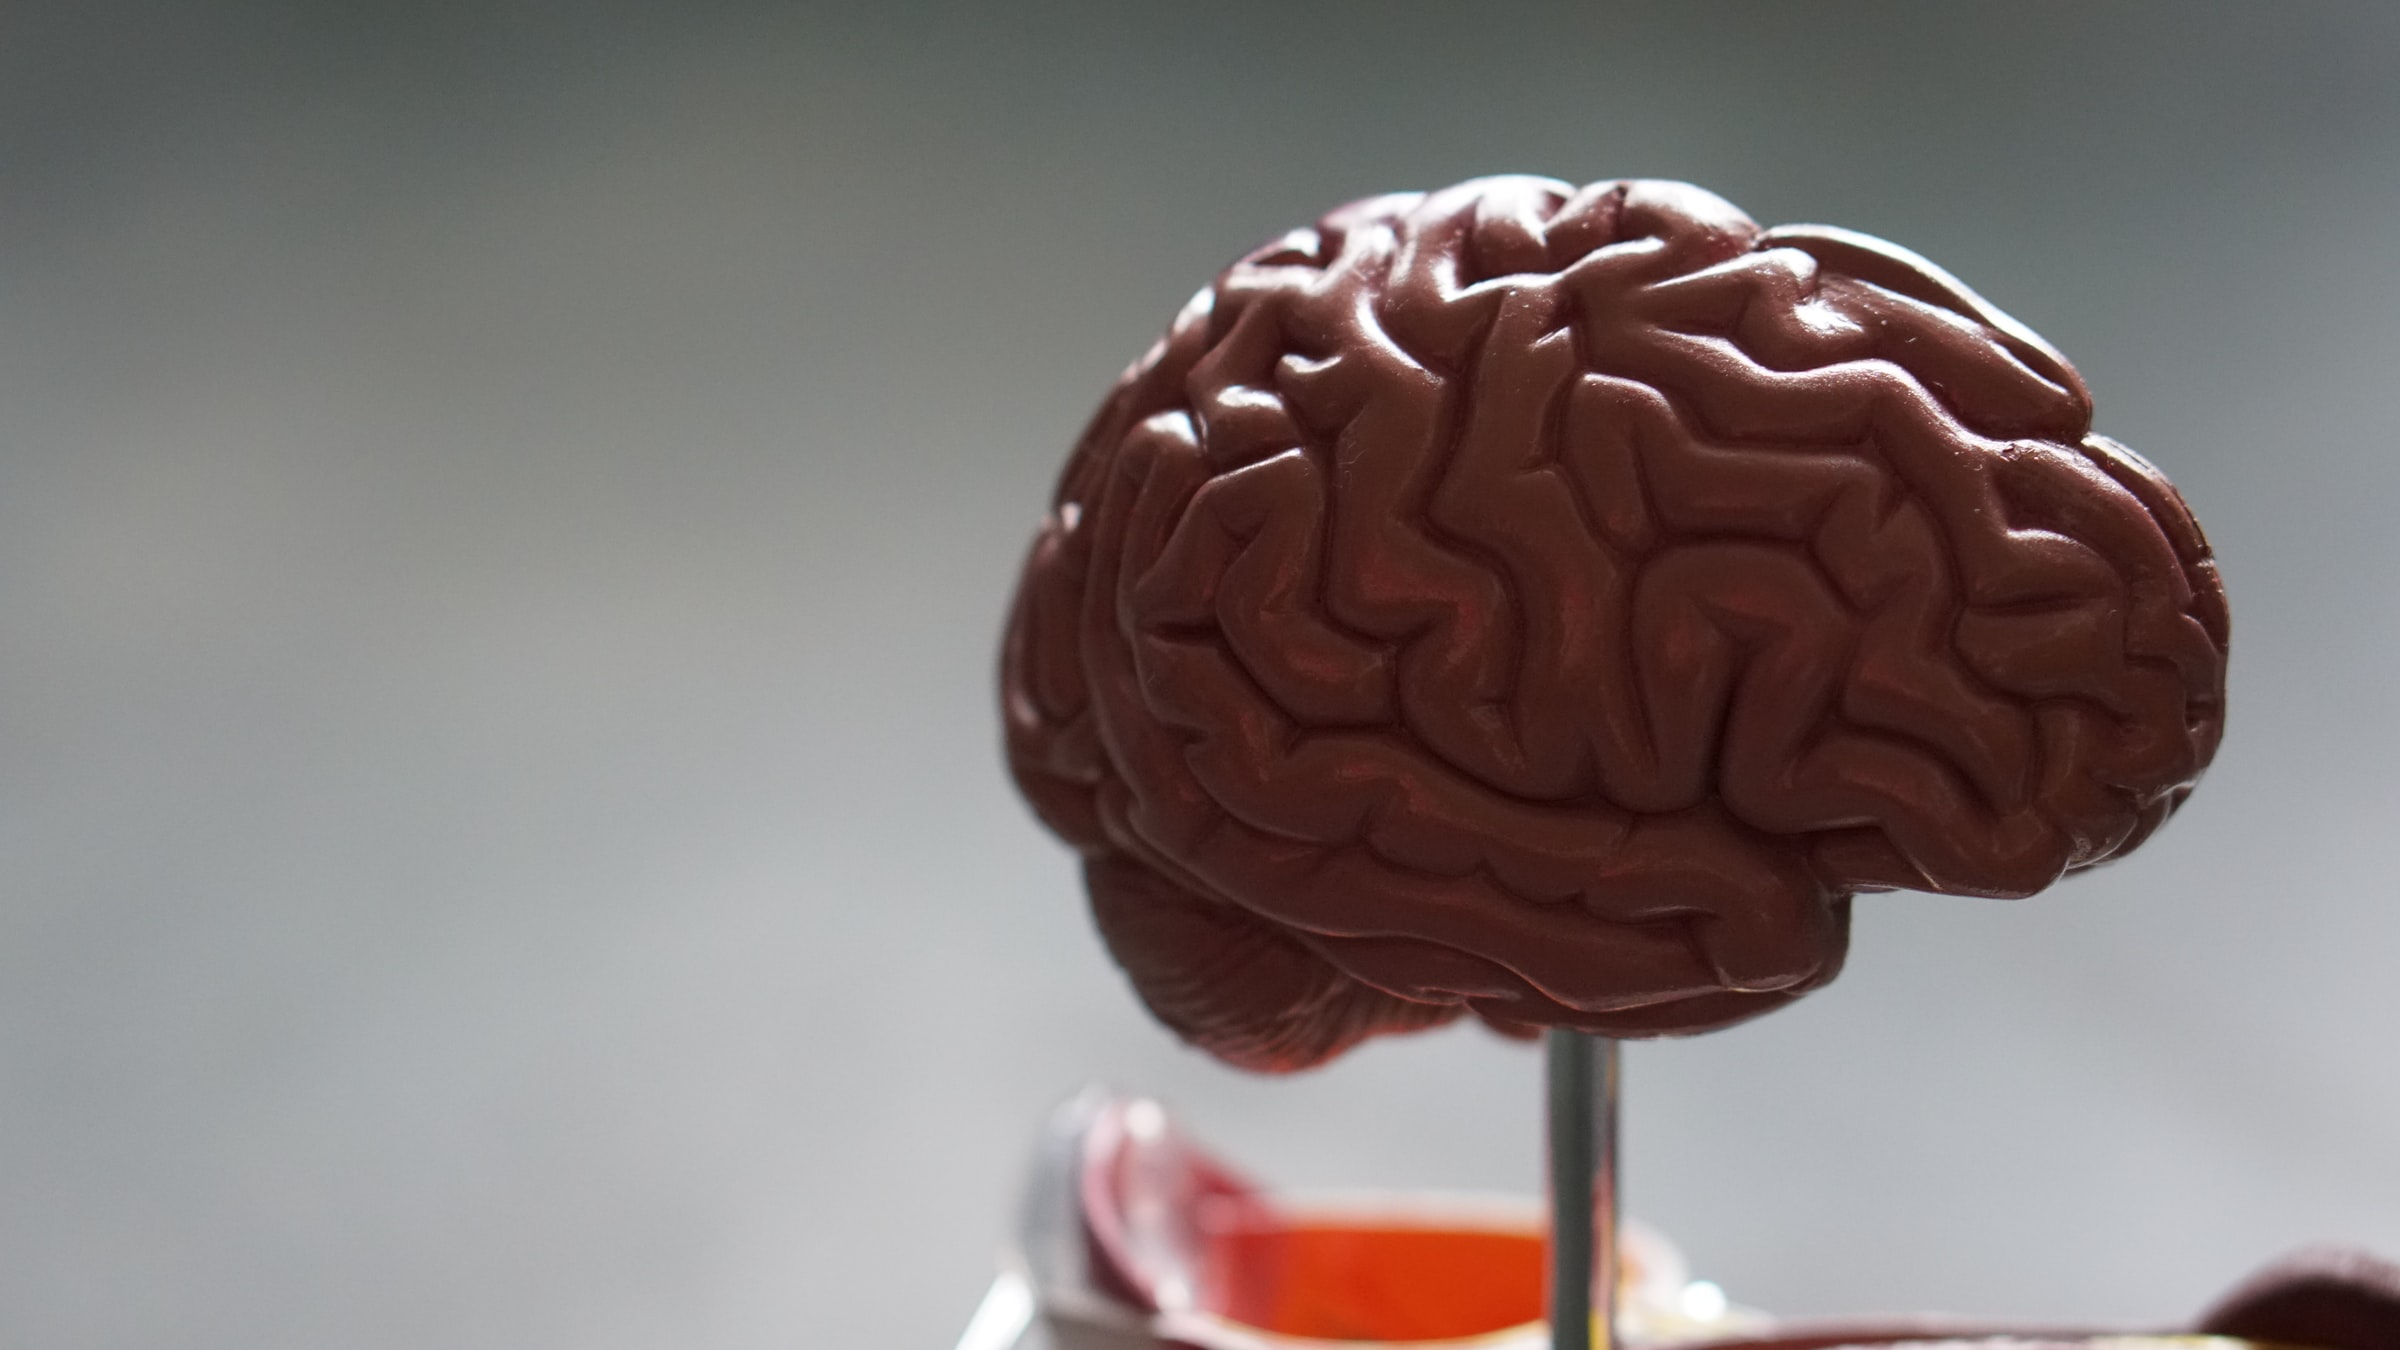 A model of a brain is displayed.